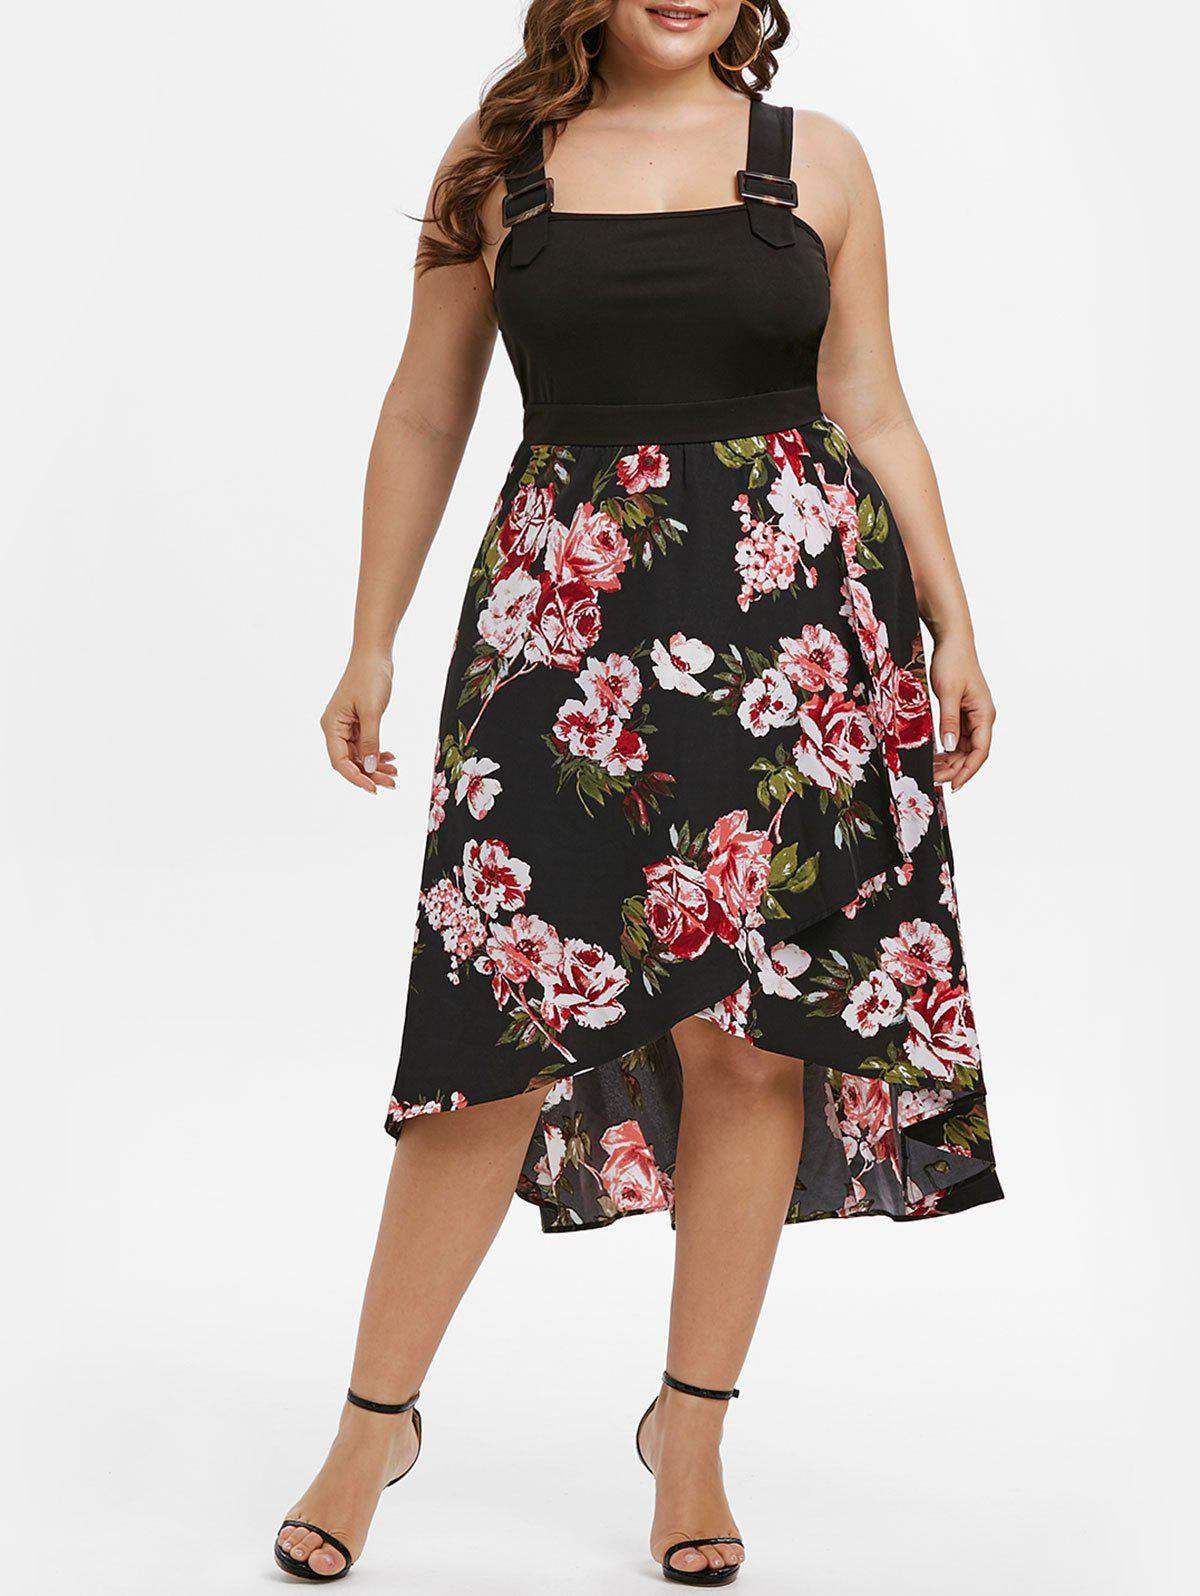 Plus Size Buckles Floral Print High Low Dress - BLACK L